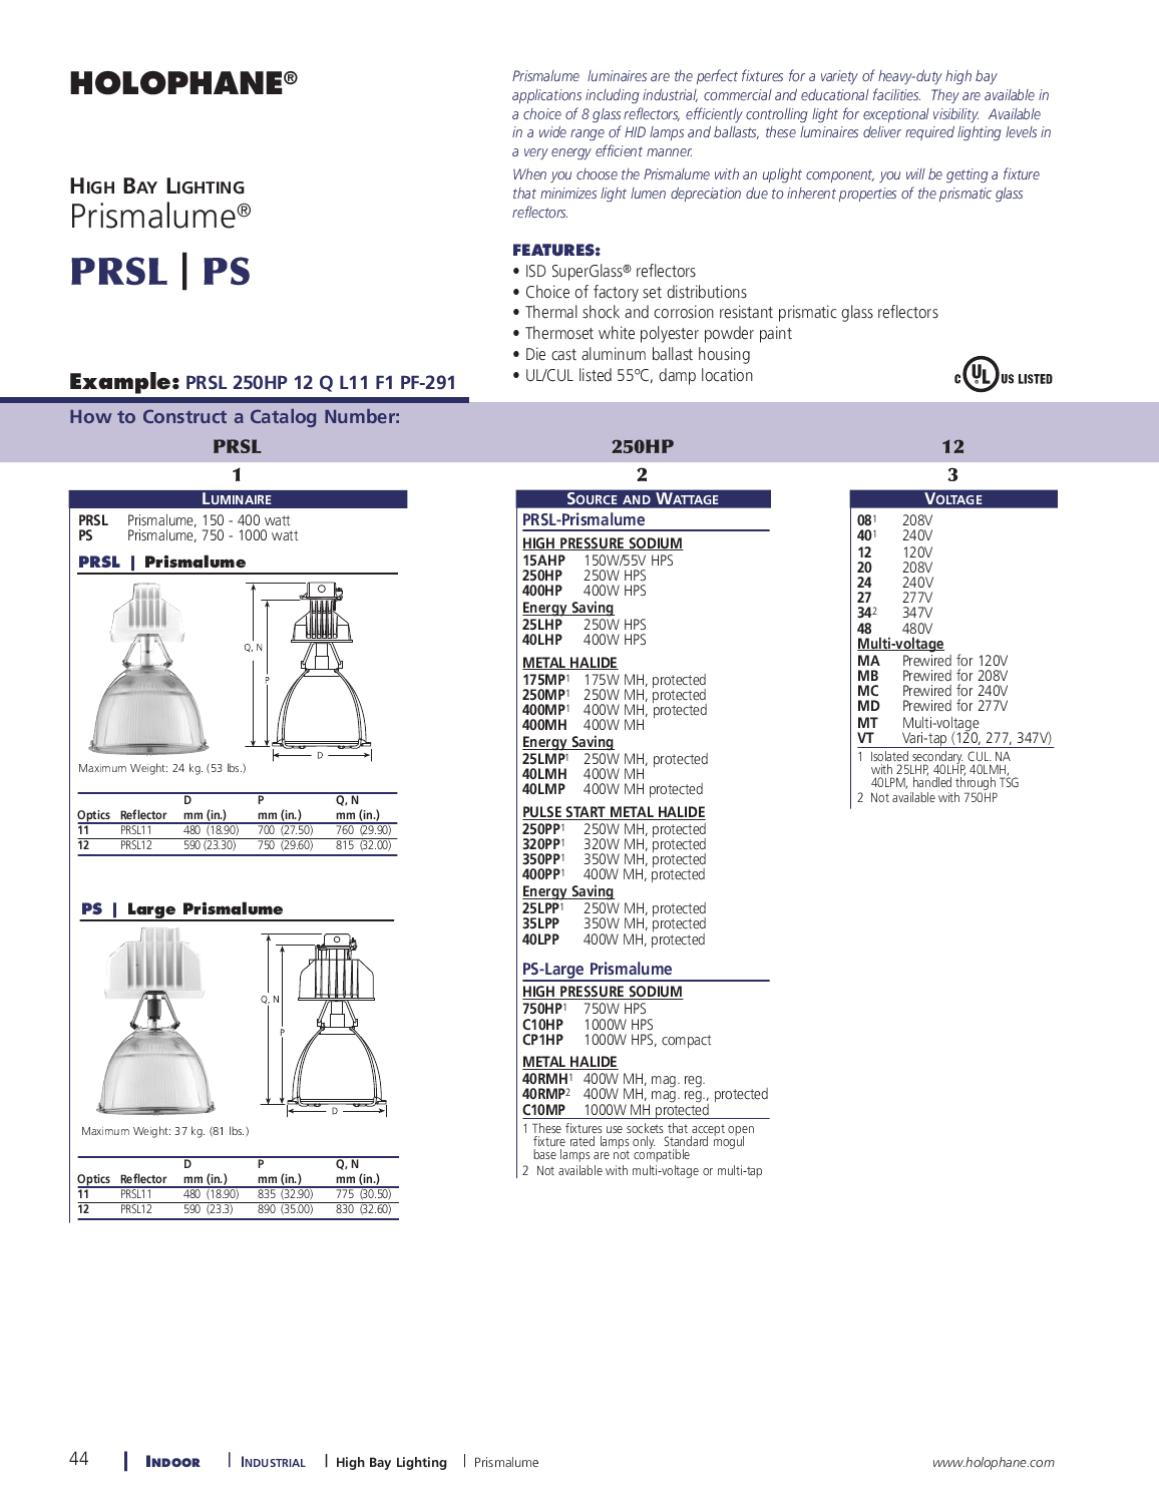 70 watt hps ballast wiring diagram 150 watt high pressure sodium remarkable hp s wiring diagram images schematic symbol thezoom us page46resize6652c861ssl sciox Image collections